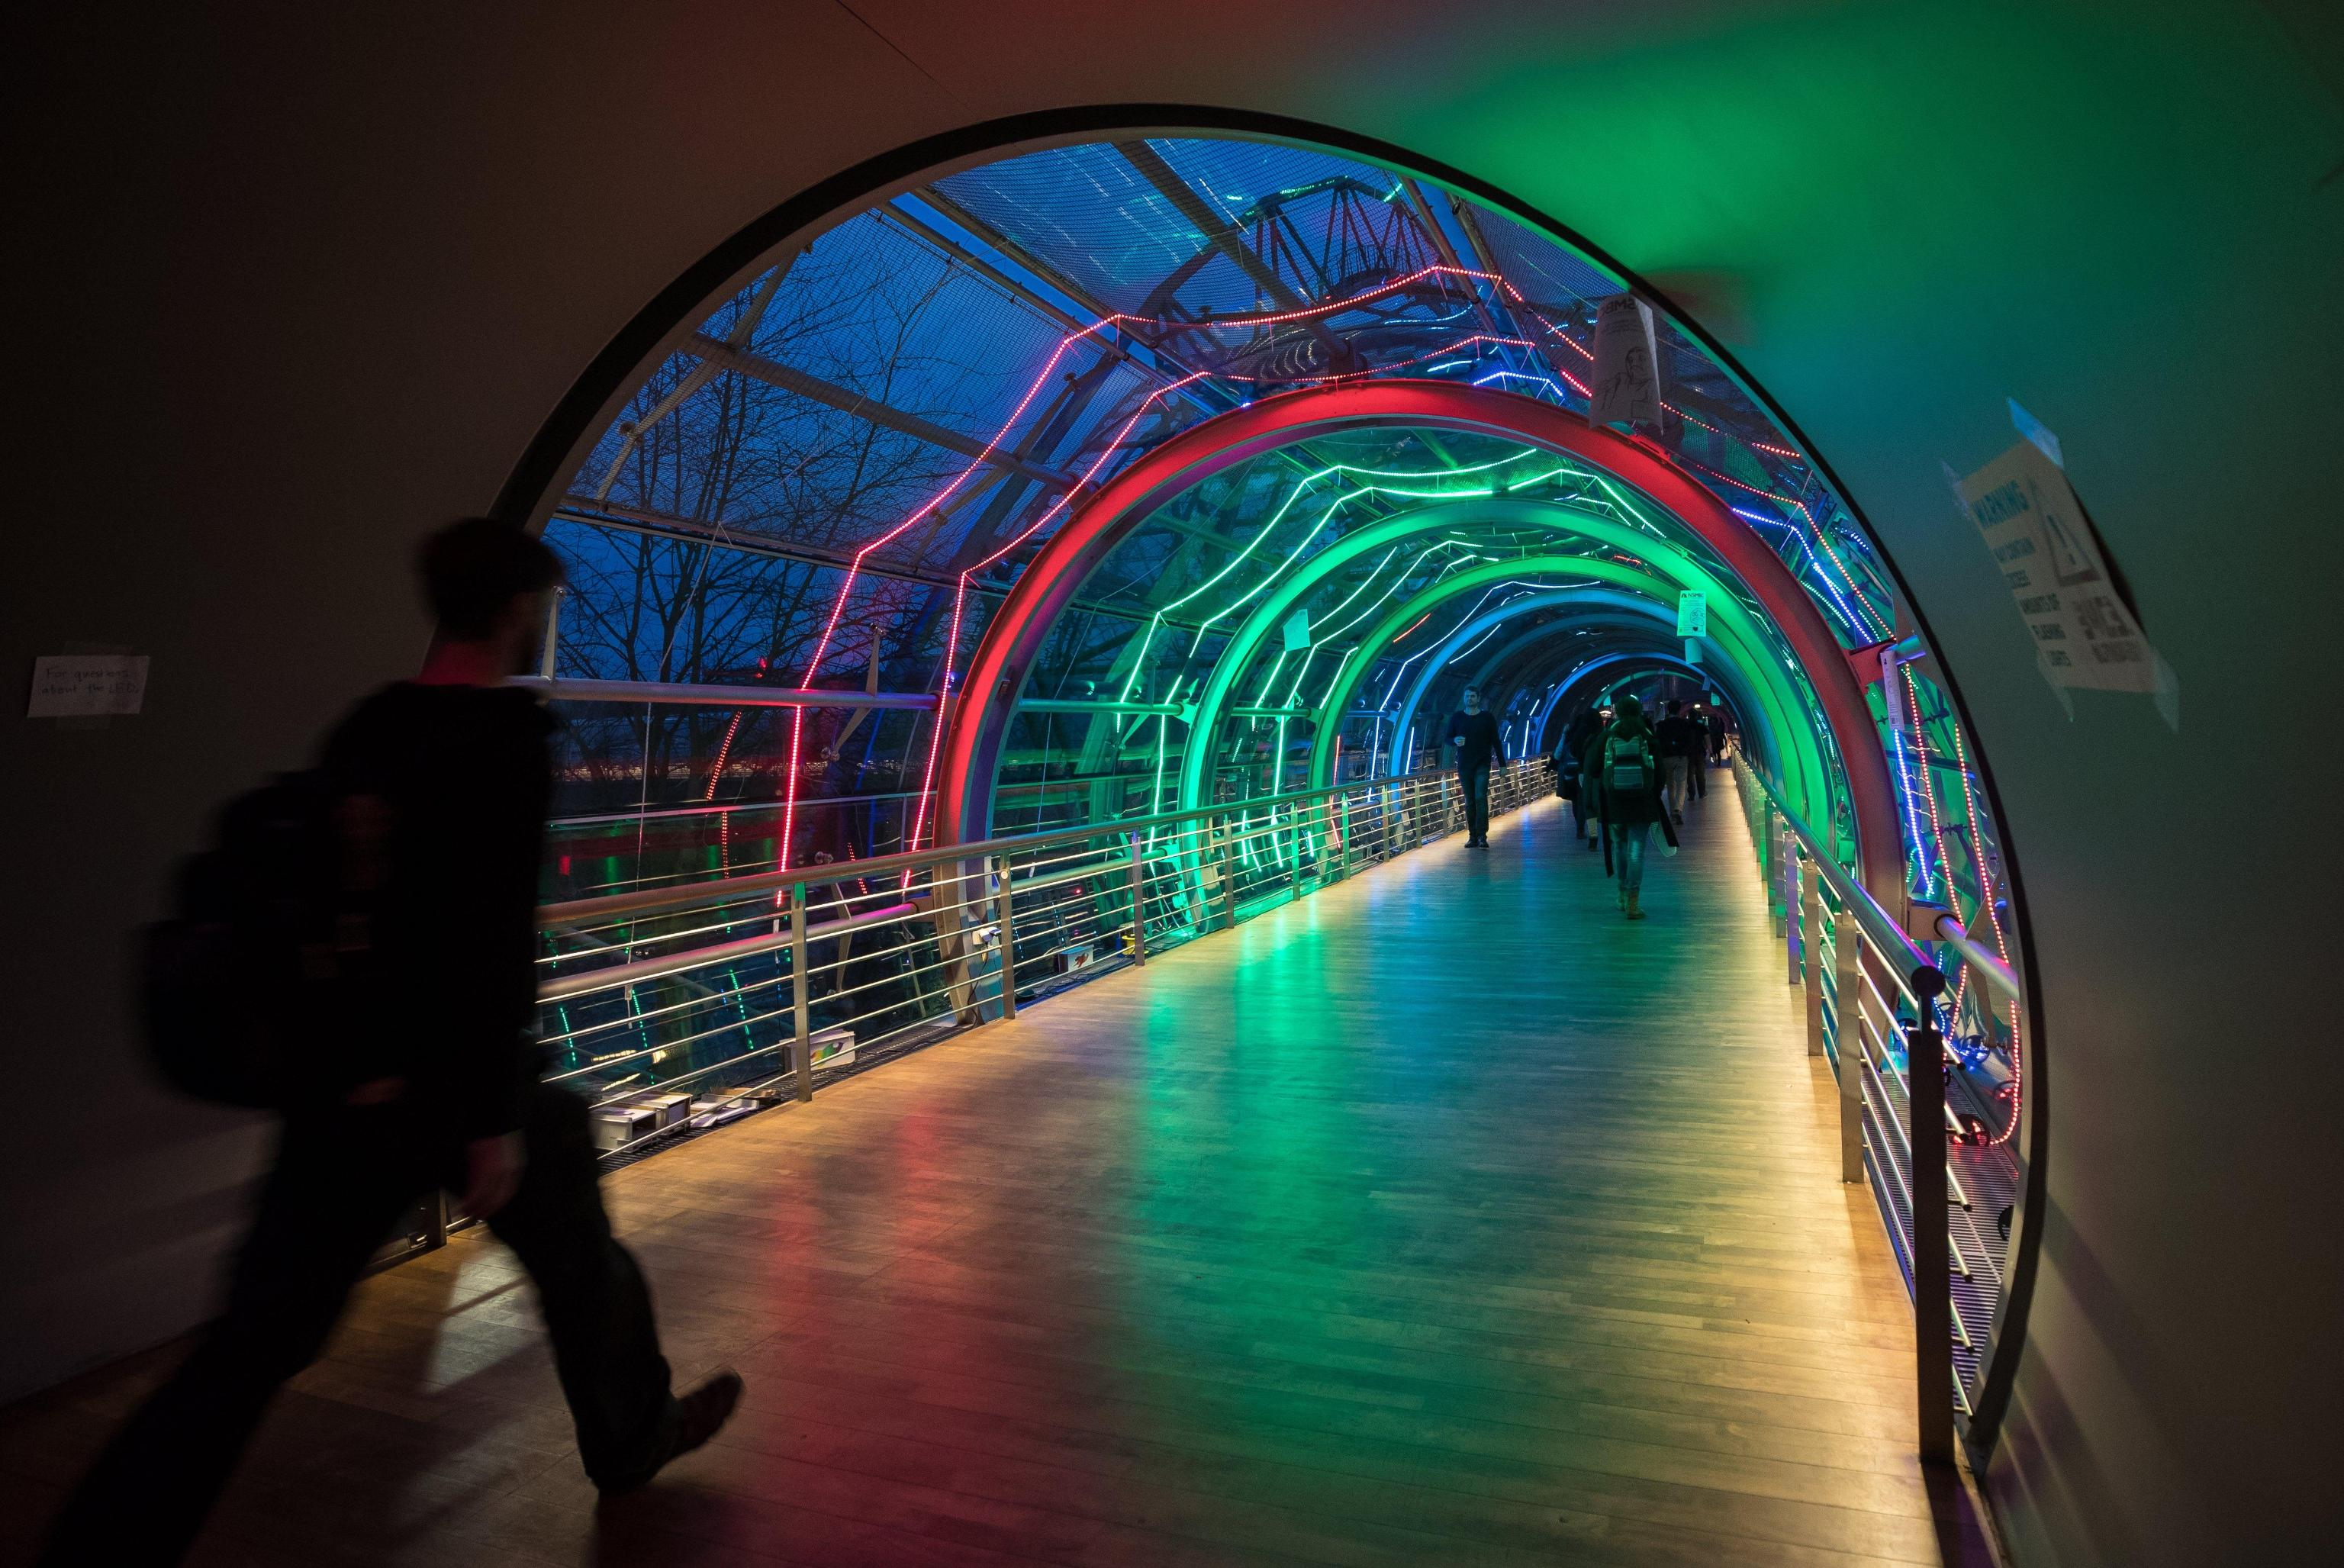 Visitors pass through a tunnel at the Chaos Communication Congress (CCC) in Leipzig, Germany, 27 December 2017. The world's largest non-commercial hacker meeting takes place until 30 December 2017.  EPA/HAYOUNG JEON